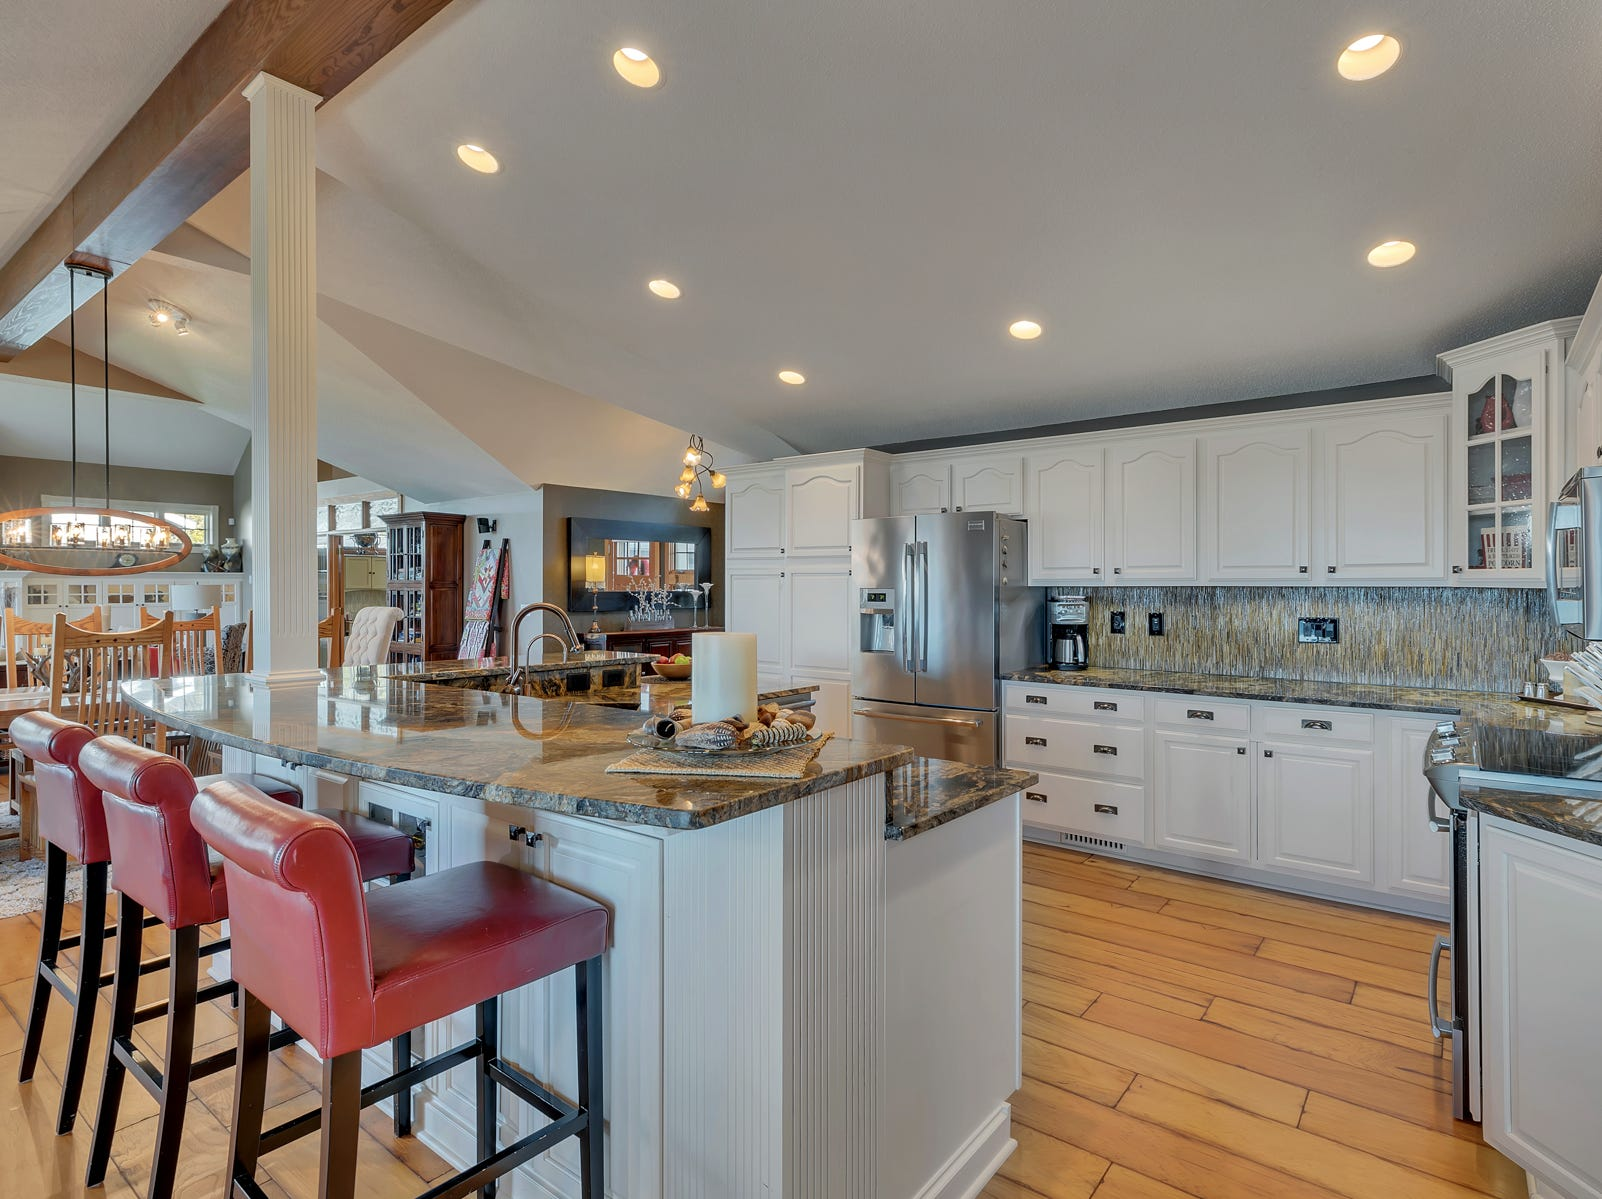 The kitchen features swirled granite countertops and stainless steel appliances.